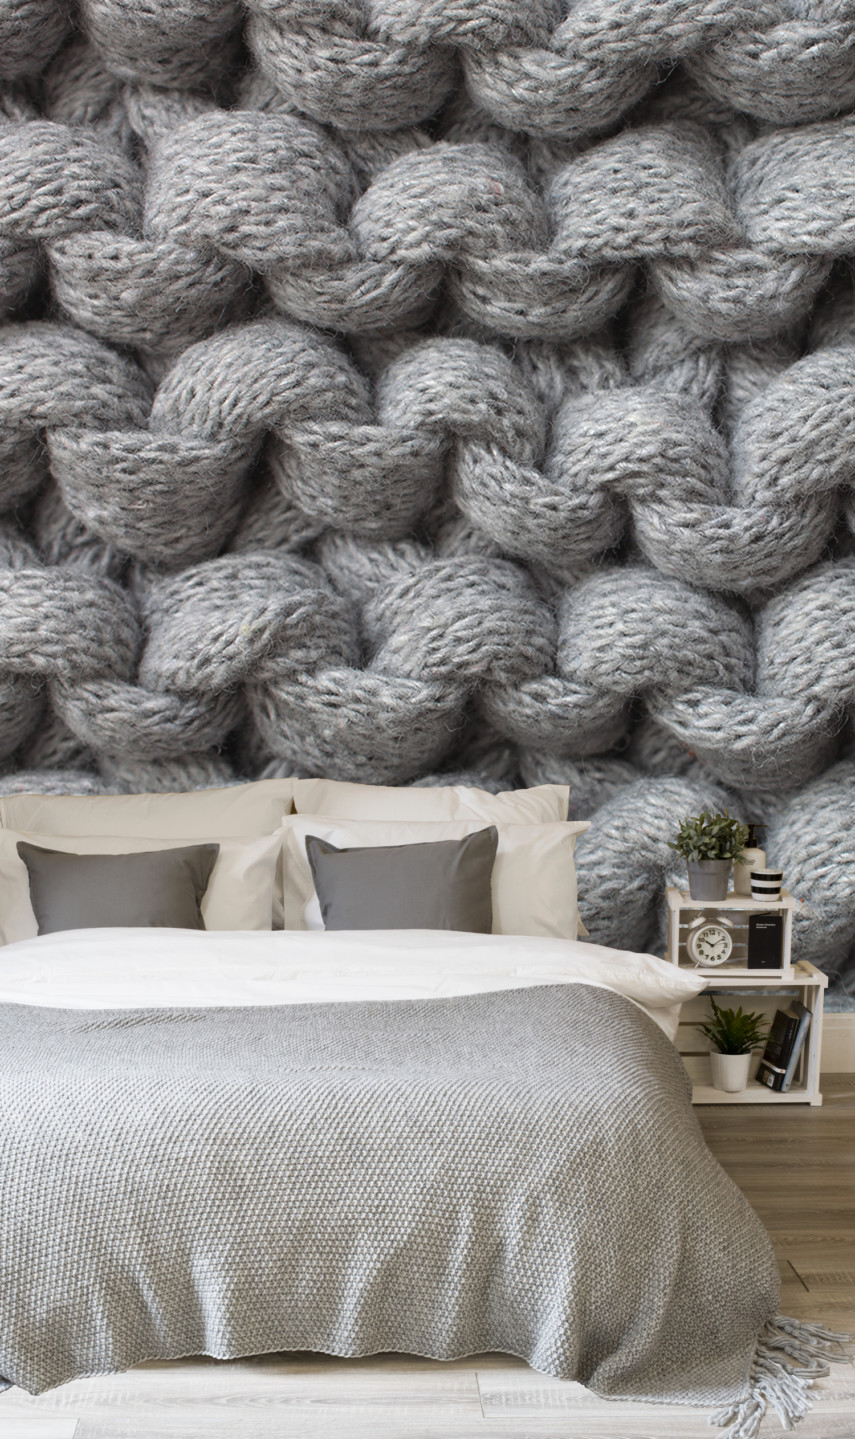 Knit wall mural makes a bedroom cozy - from muralswallpaper.com